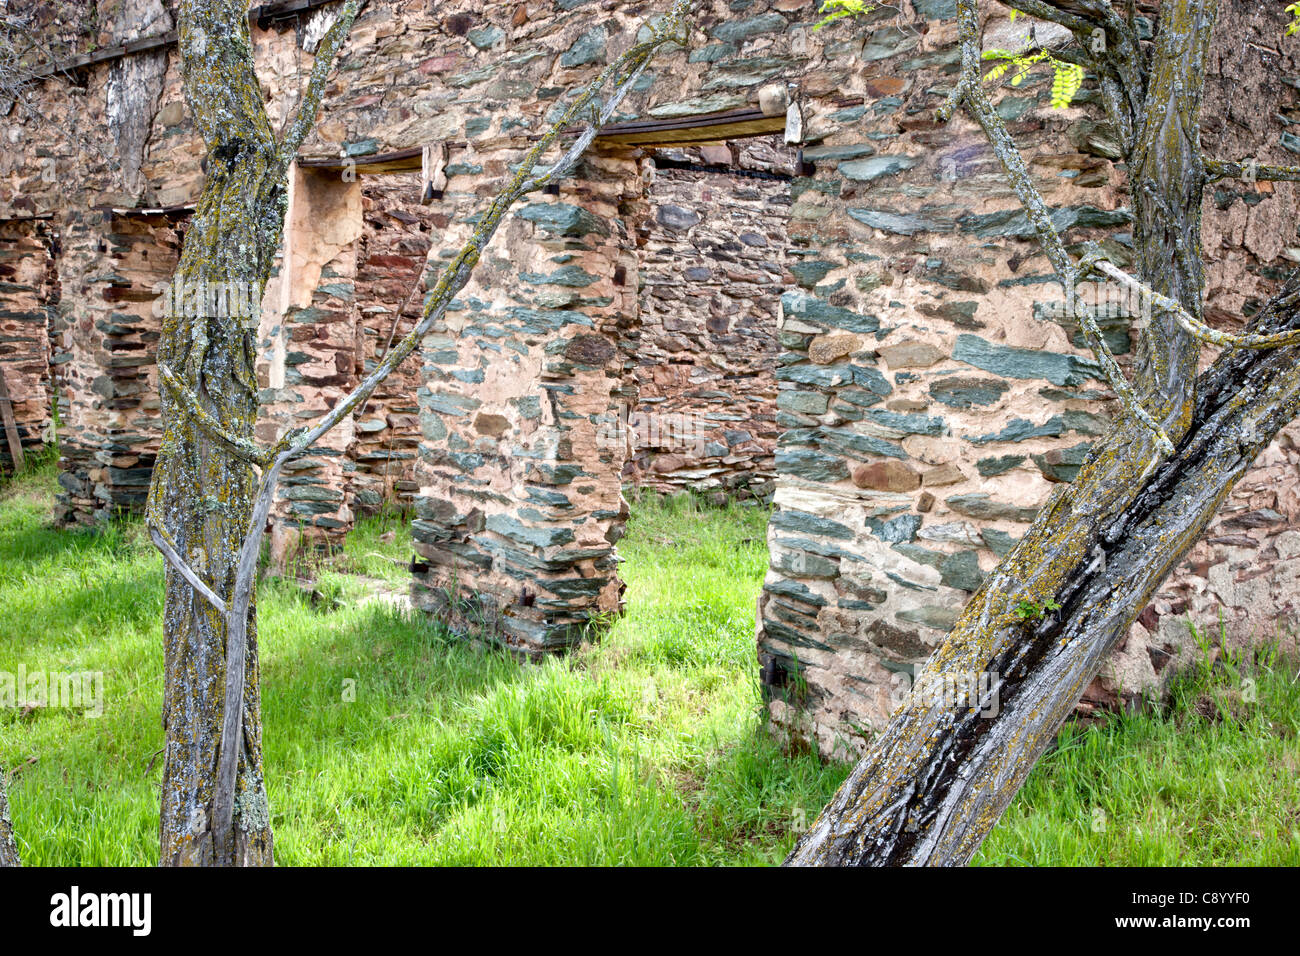 Ruins of the old Adams Express Office, Campo Seco - Stock Image